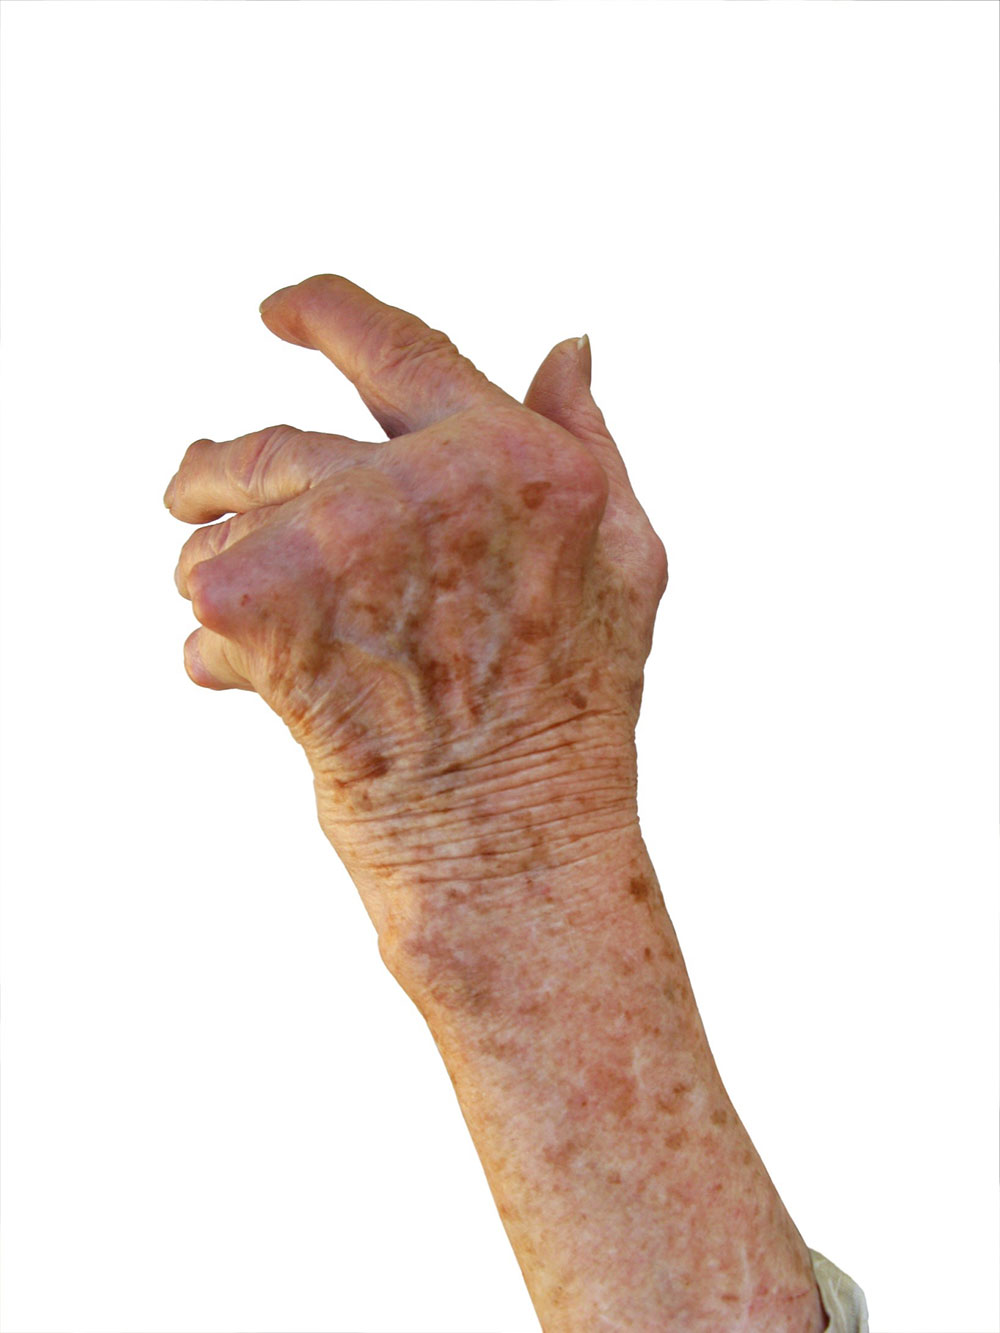 Raised arthritic hand - Thinkstock photos